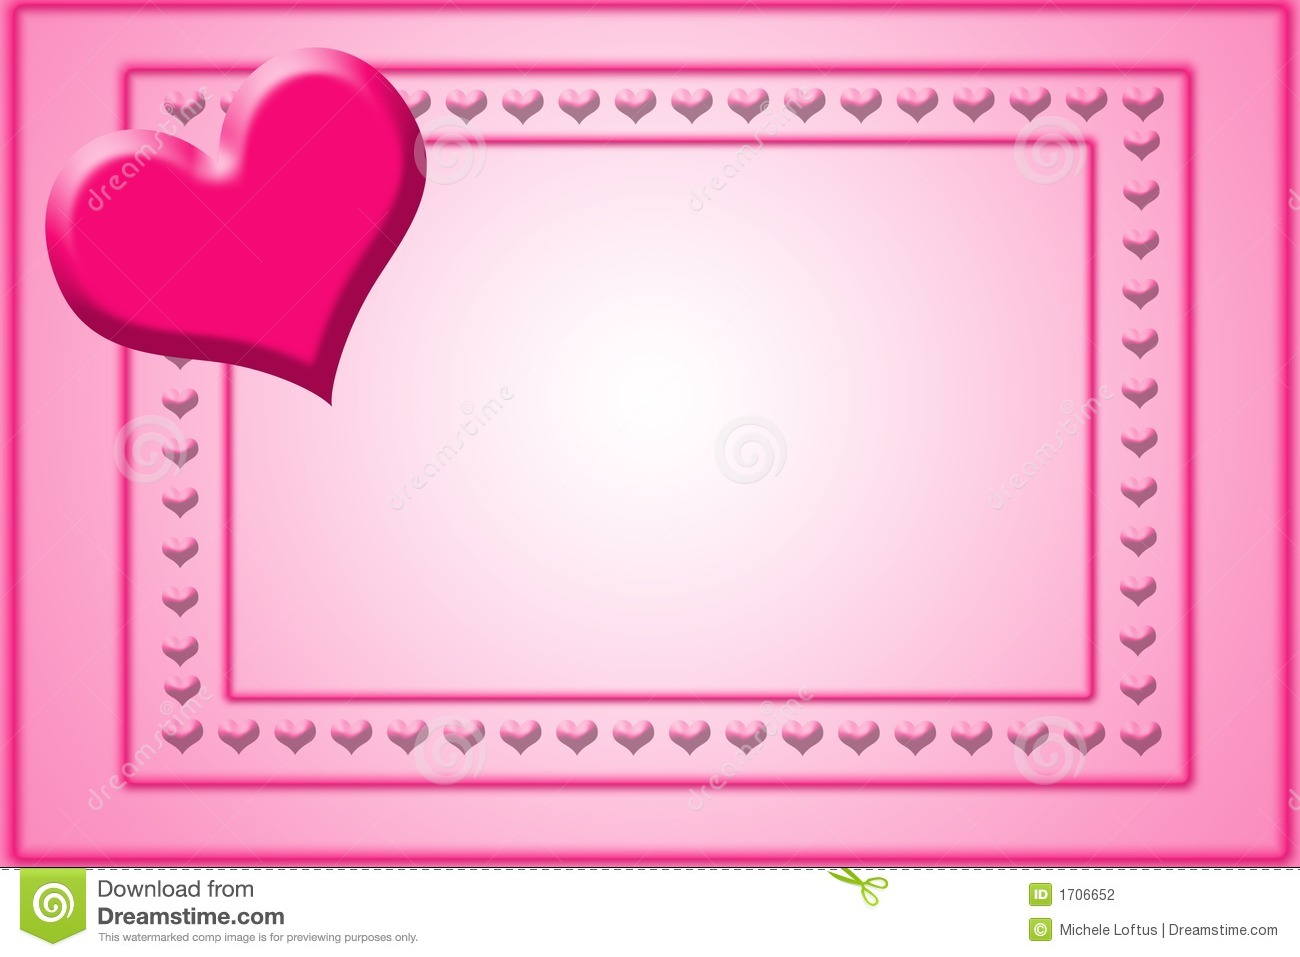 Valentine card template stock illustration illustration of valentine card template maxwellsz